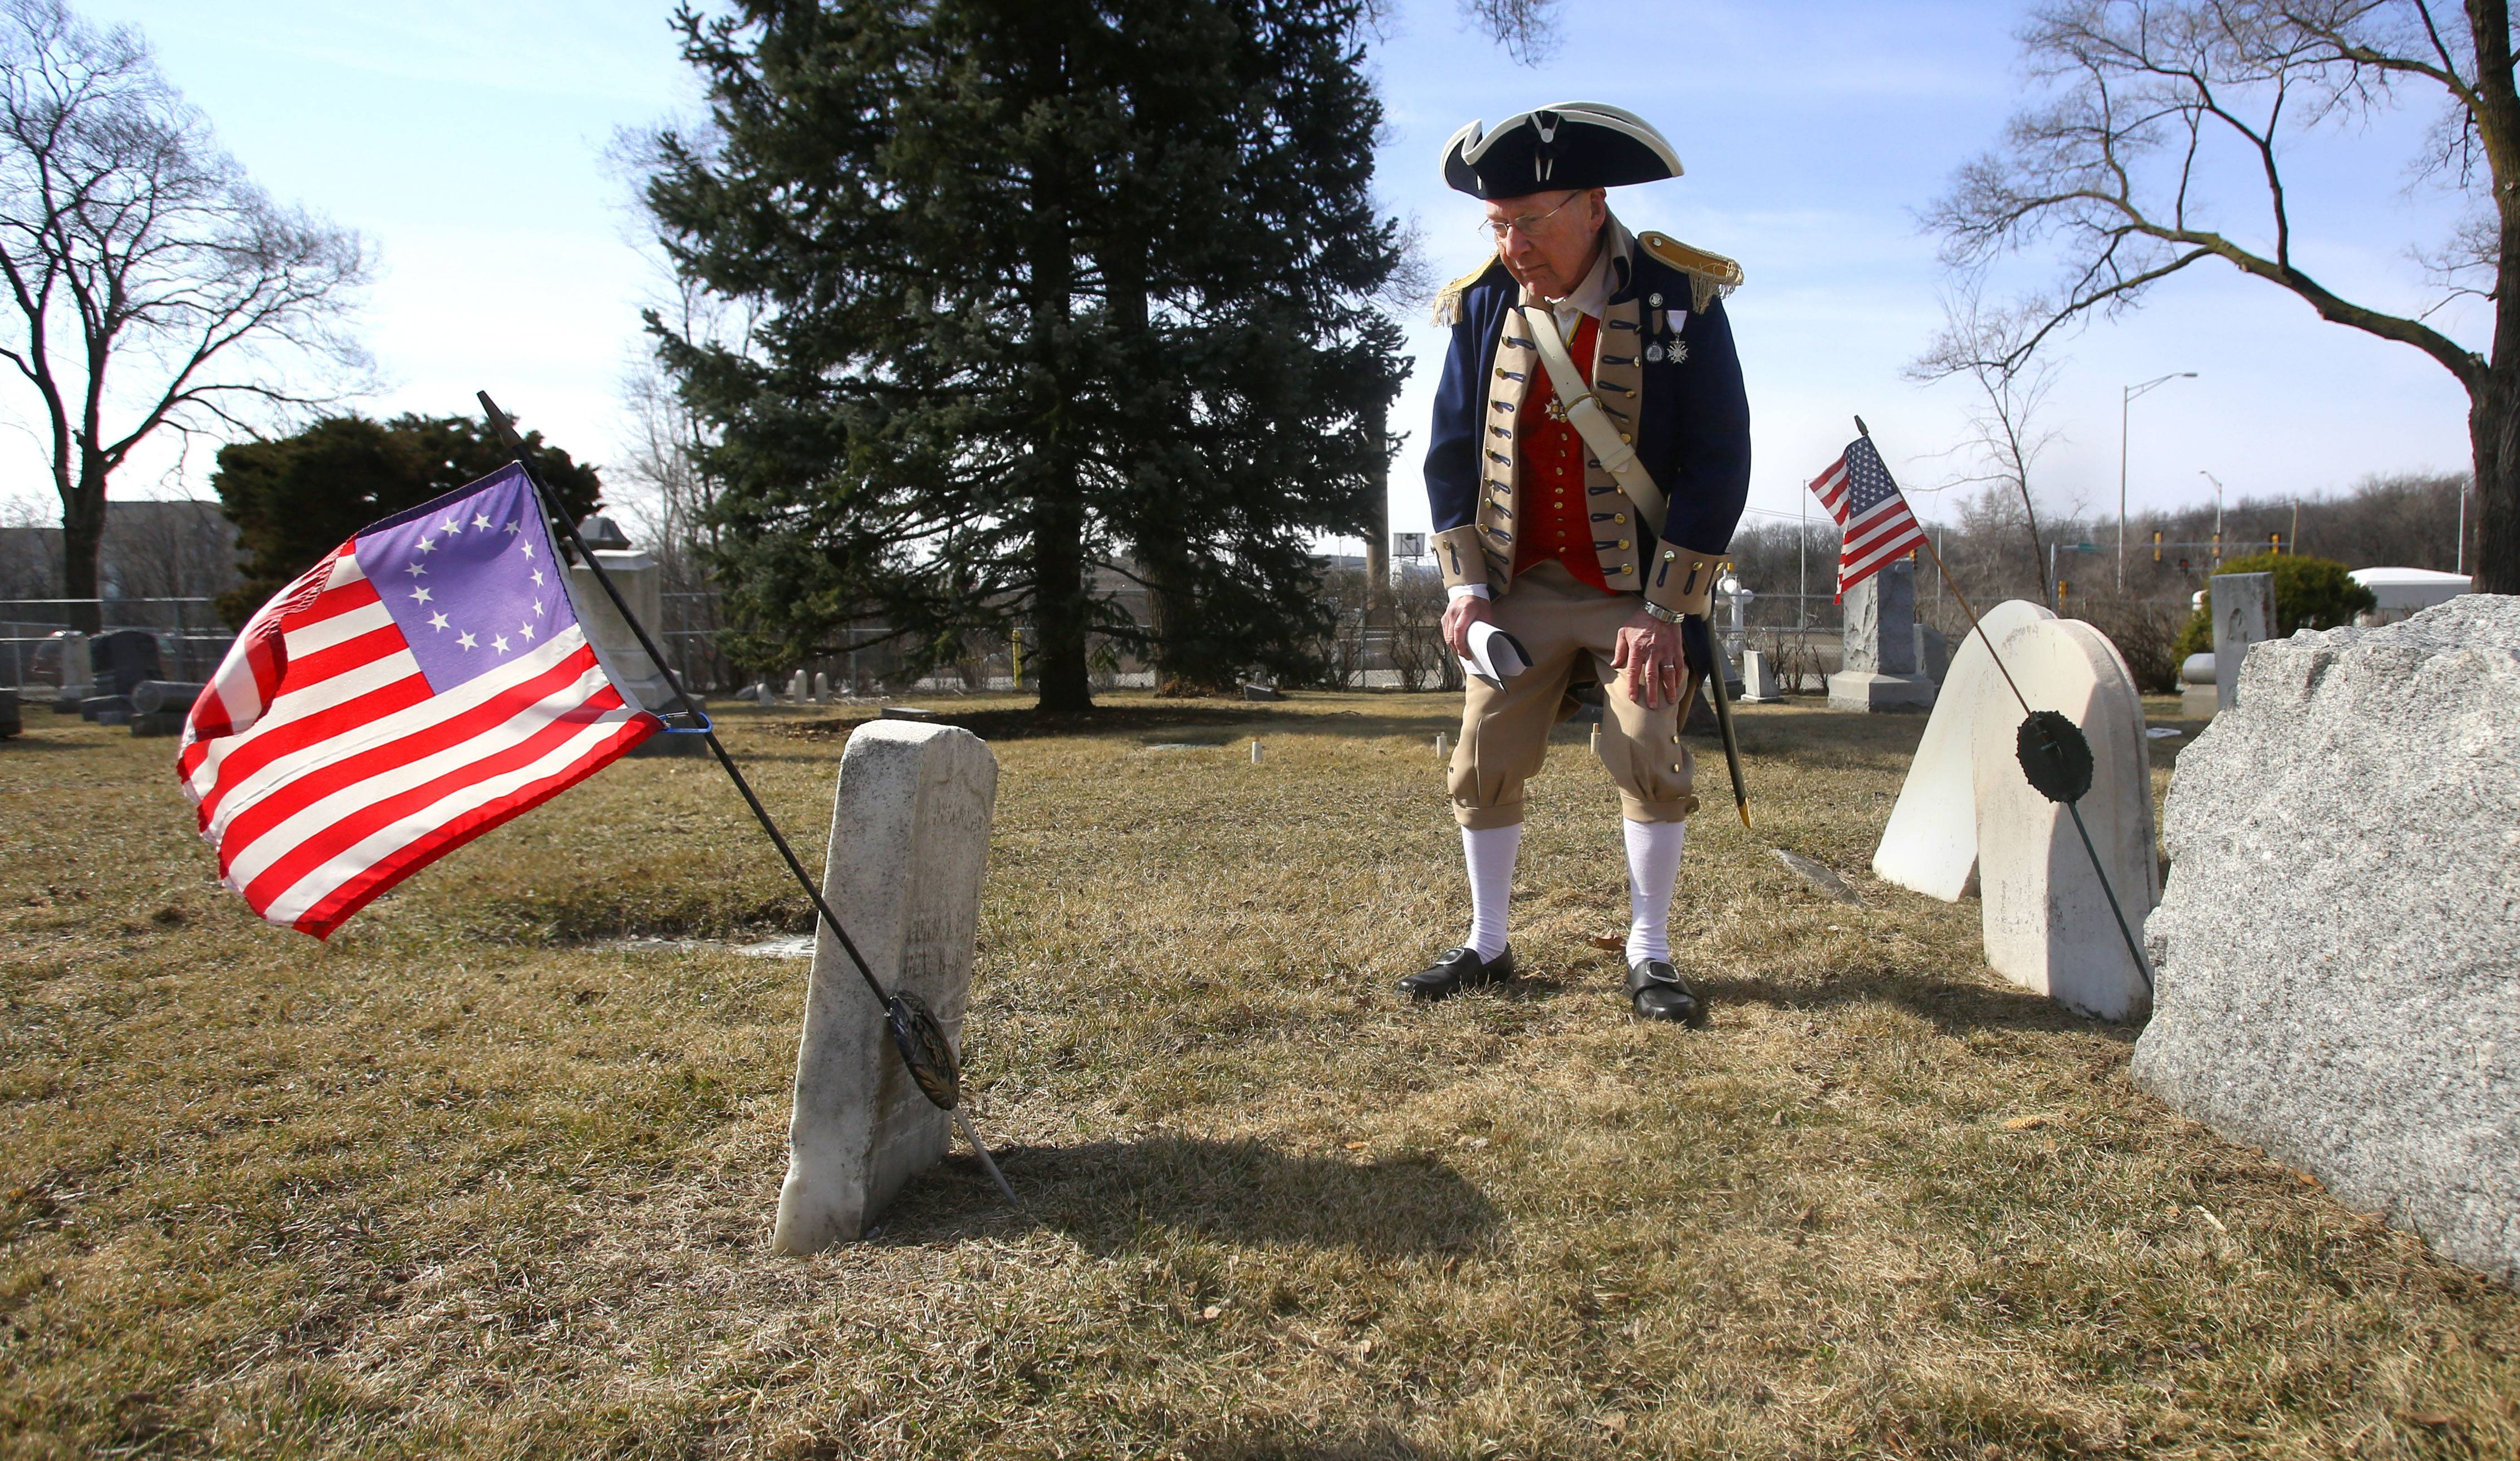 The Illinois Society Sons of the American Revolution installed historical markers Sunday at Elk Grove Cemetery, recognizing two Revolutionary War figures buried there. Above, Franz Herder observes the gravesite of Revolutionary War patriot Aaron Miner.